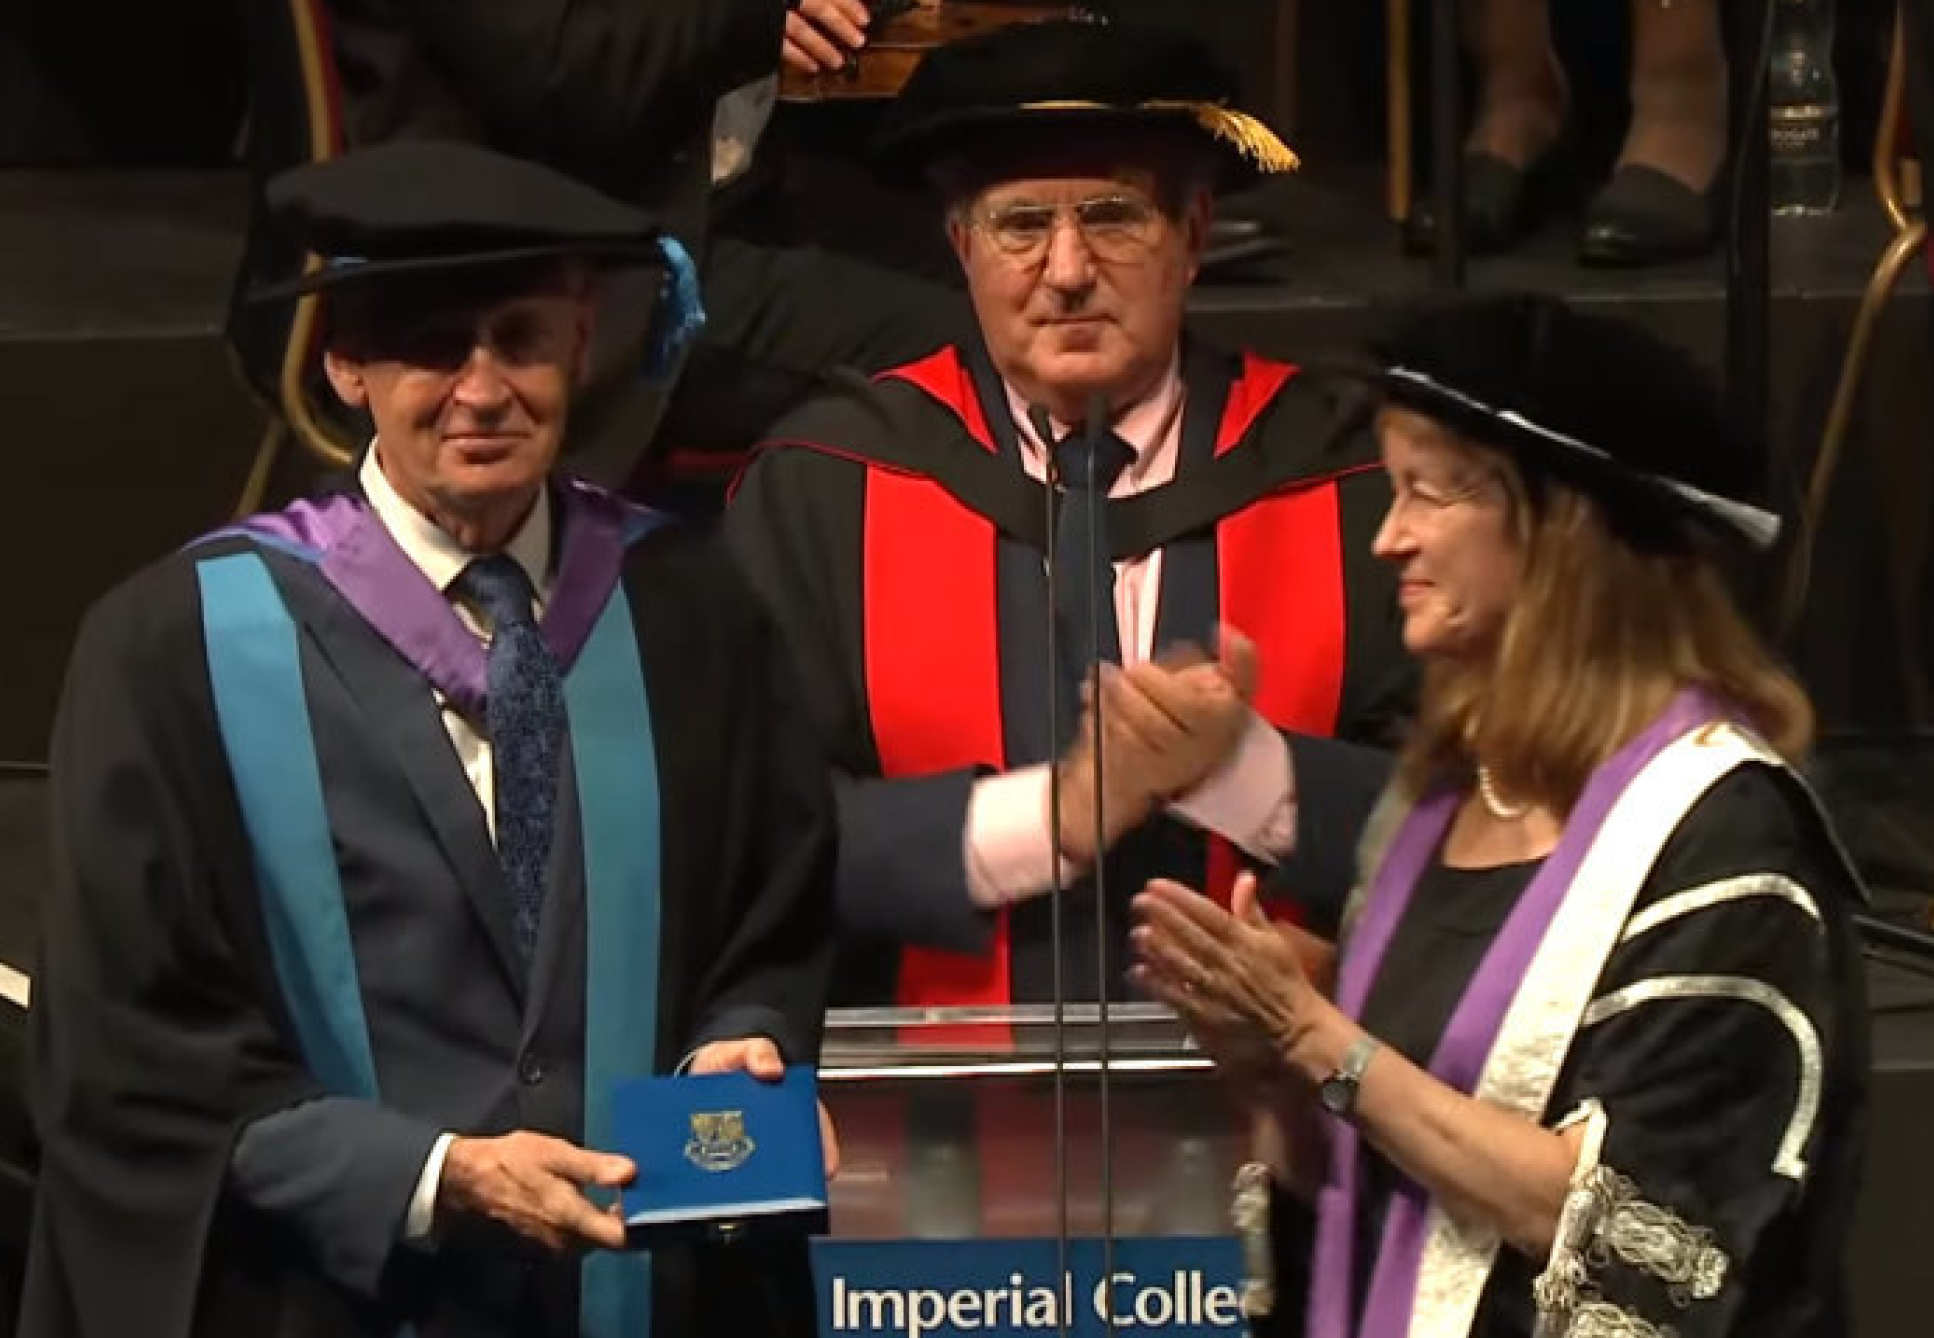 Professor James Best presented with an Imperial College Medal by President Alice Gast